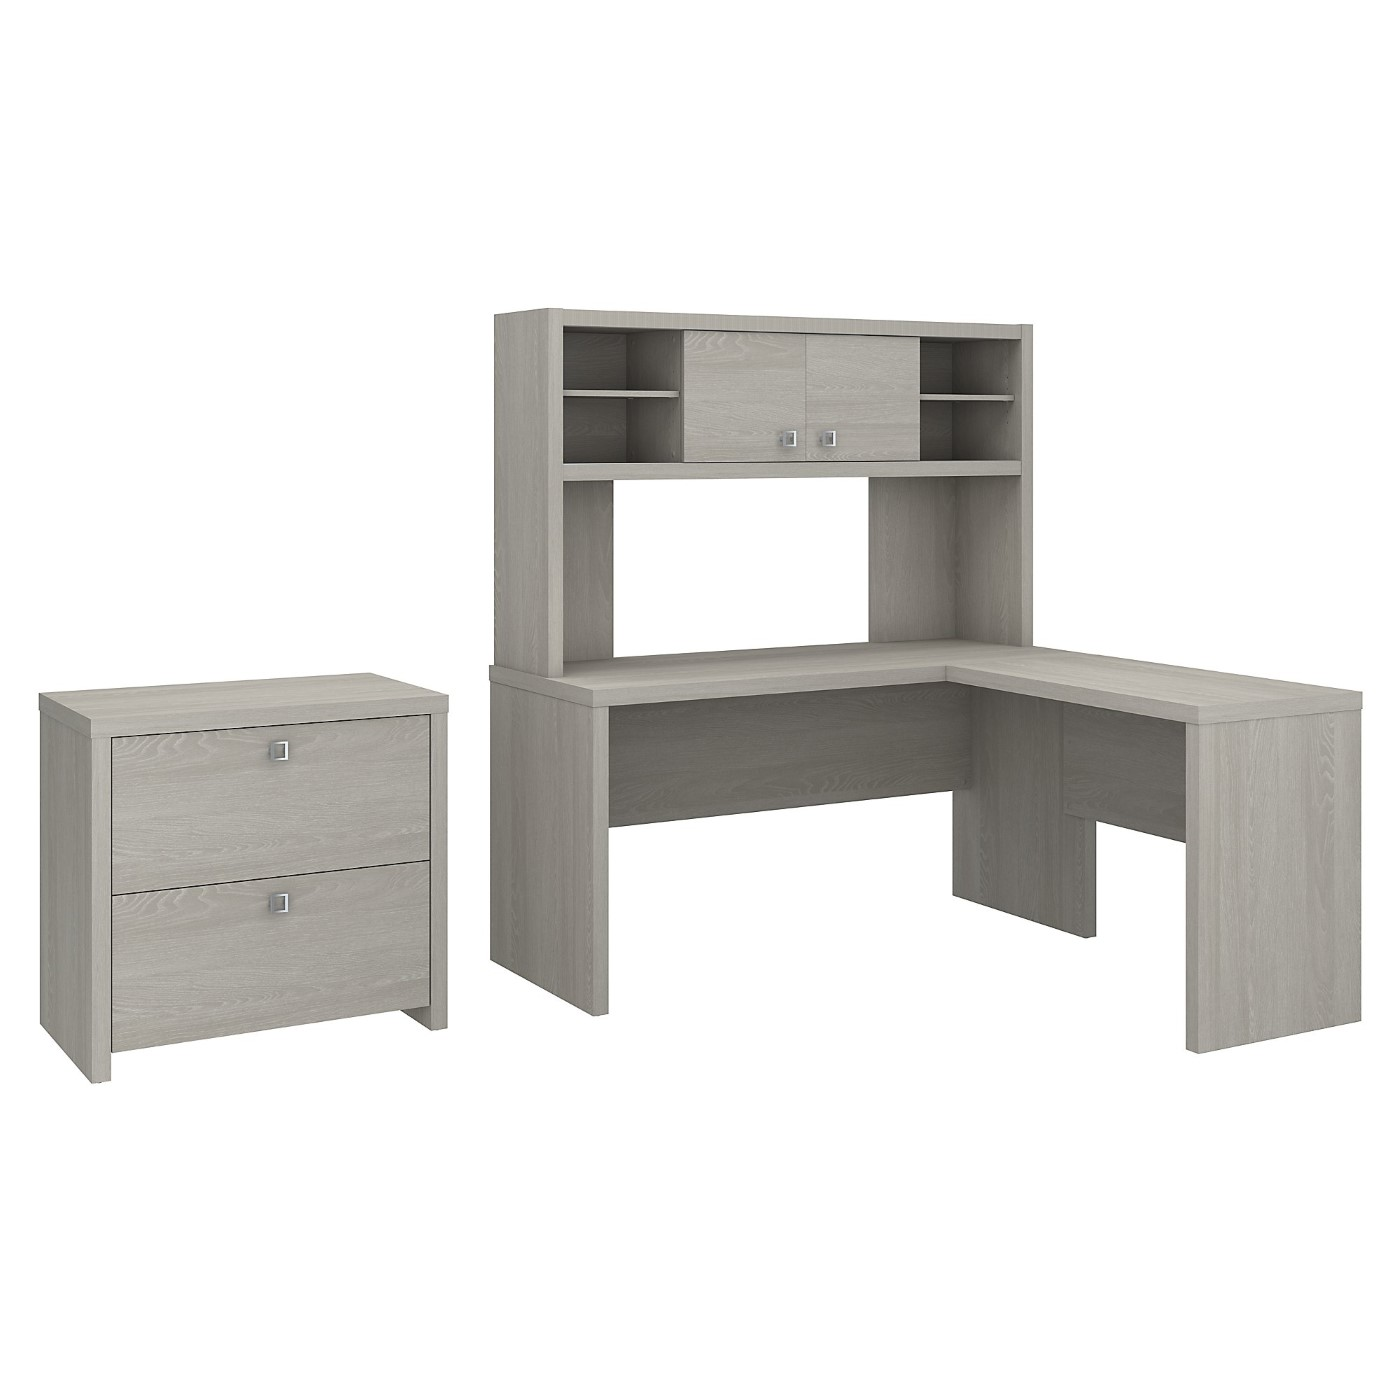 </b></font><b>The kathy ireland� Echo L Shaped Desk with Hutch and Lateral File Cabinet is Sustainable Eco Friendly Furniture. Includes Free Shipping! 30H x 72L x 72W</b></font>  VIDEO BELOW. <p>RATING:&#11088;&#11088;&#11088;&#11088;&#11088;</b></font></b>